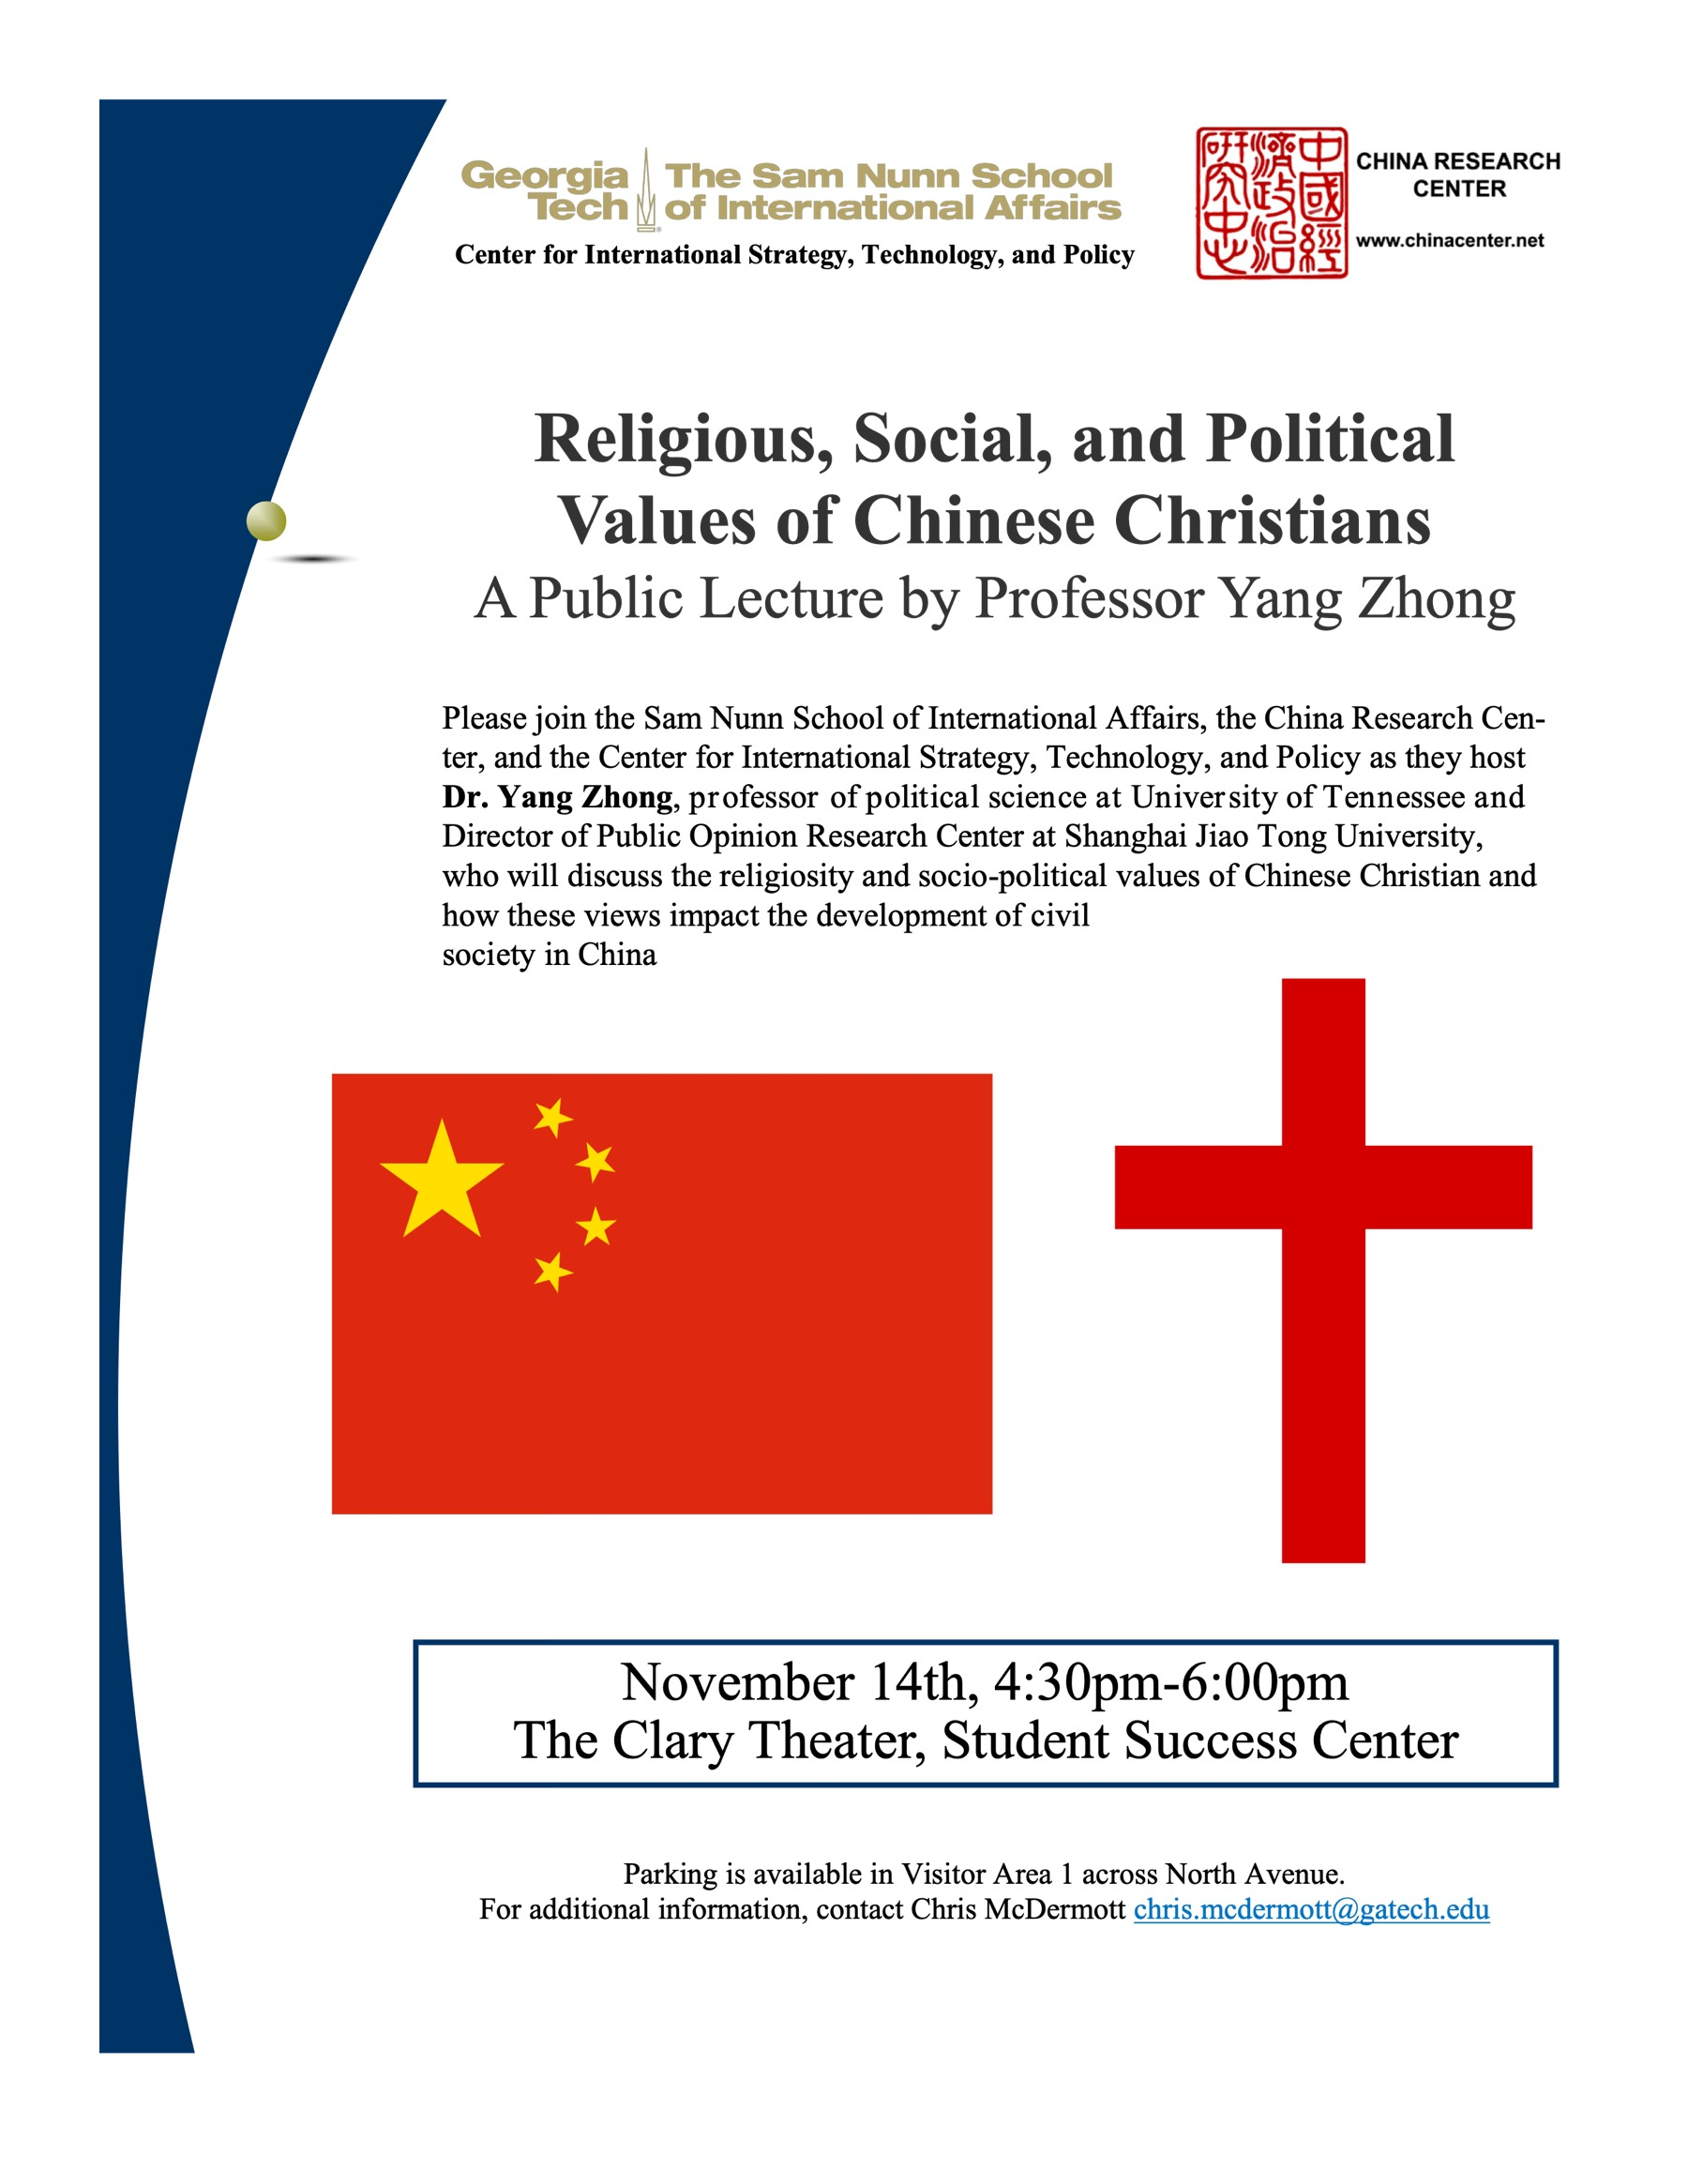 Religious, Social And Political Values Of Chinese Christians